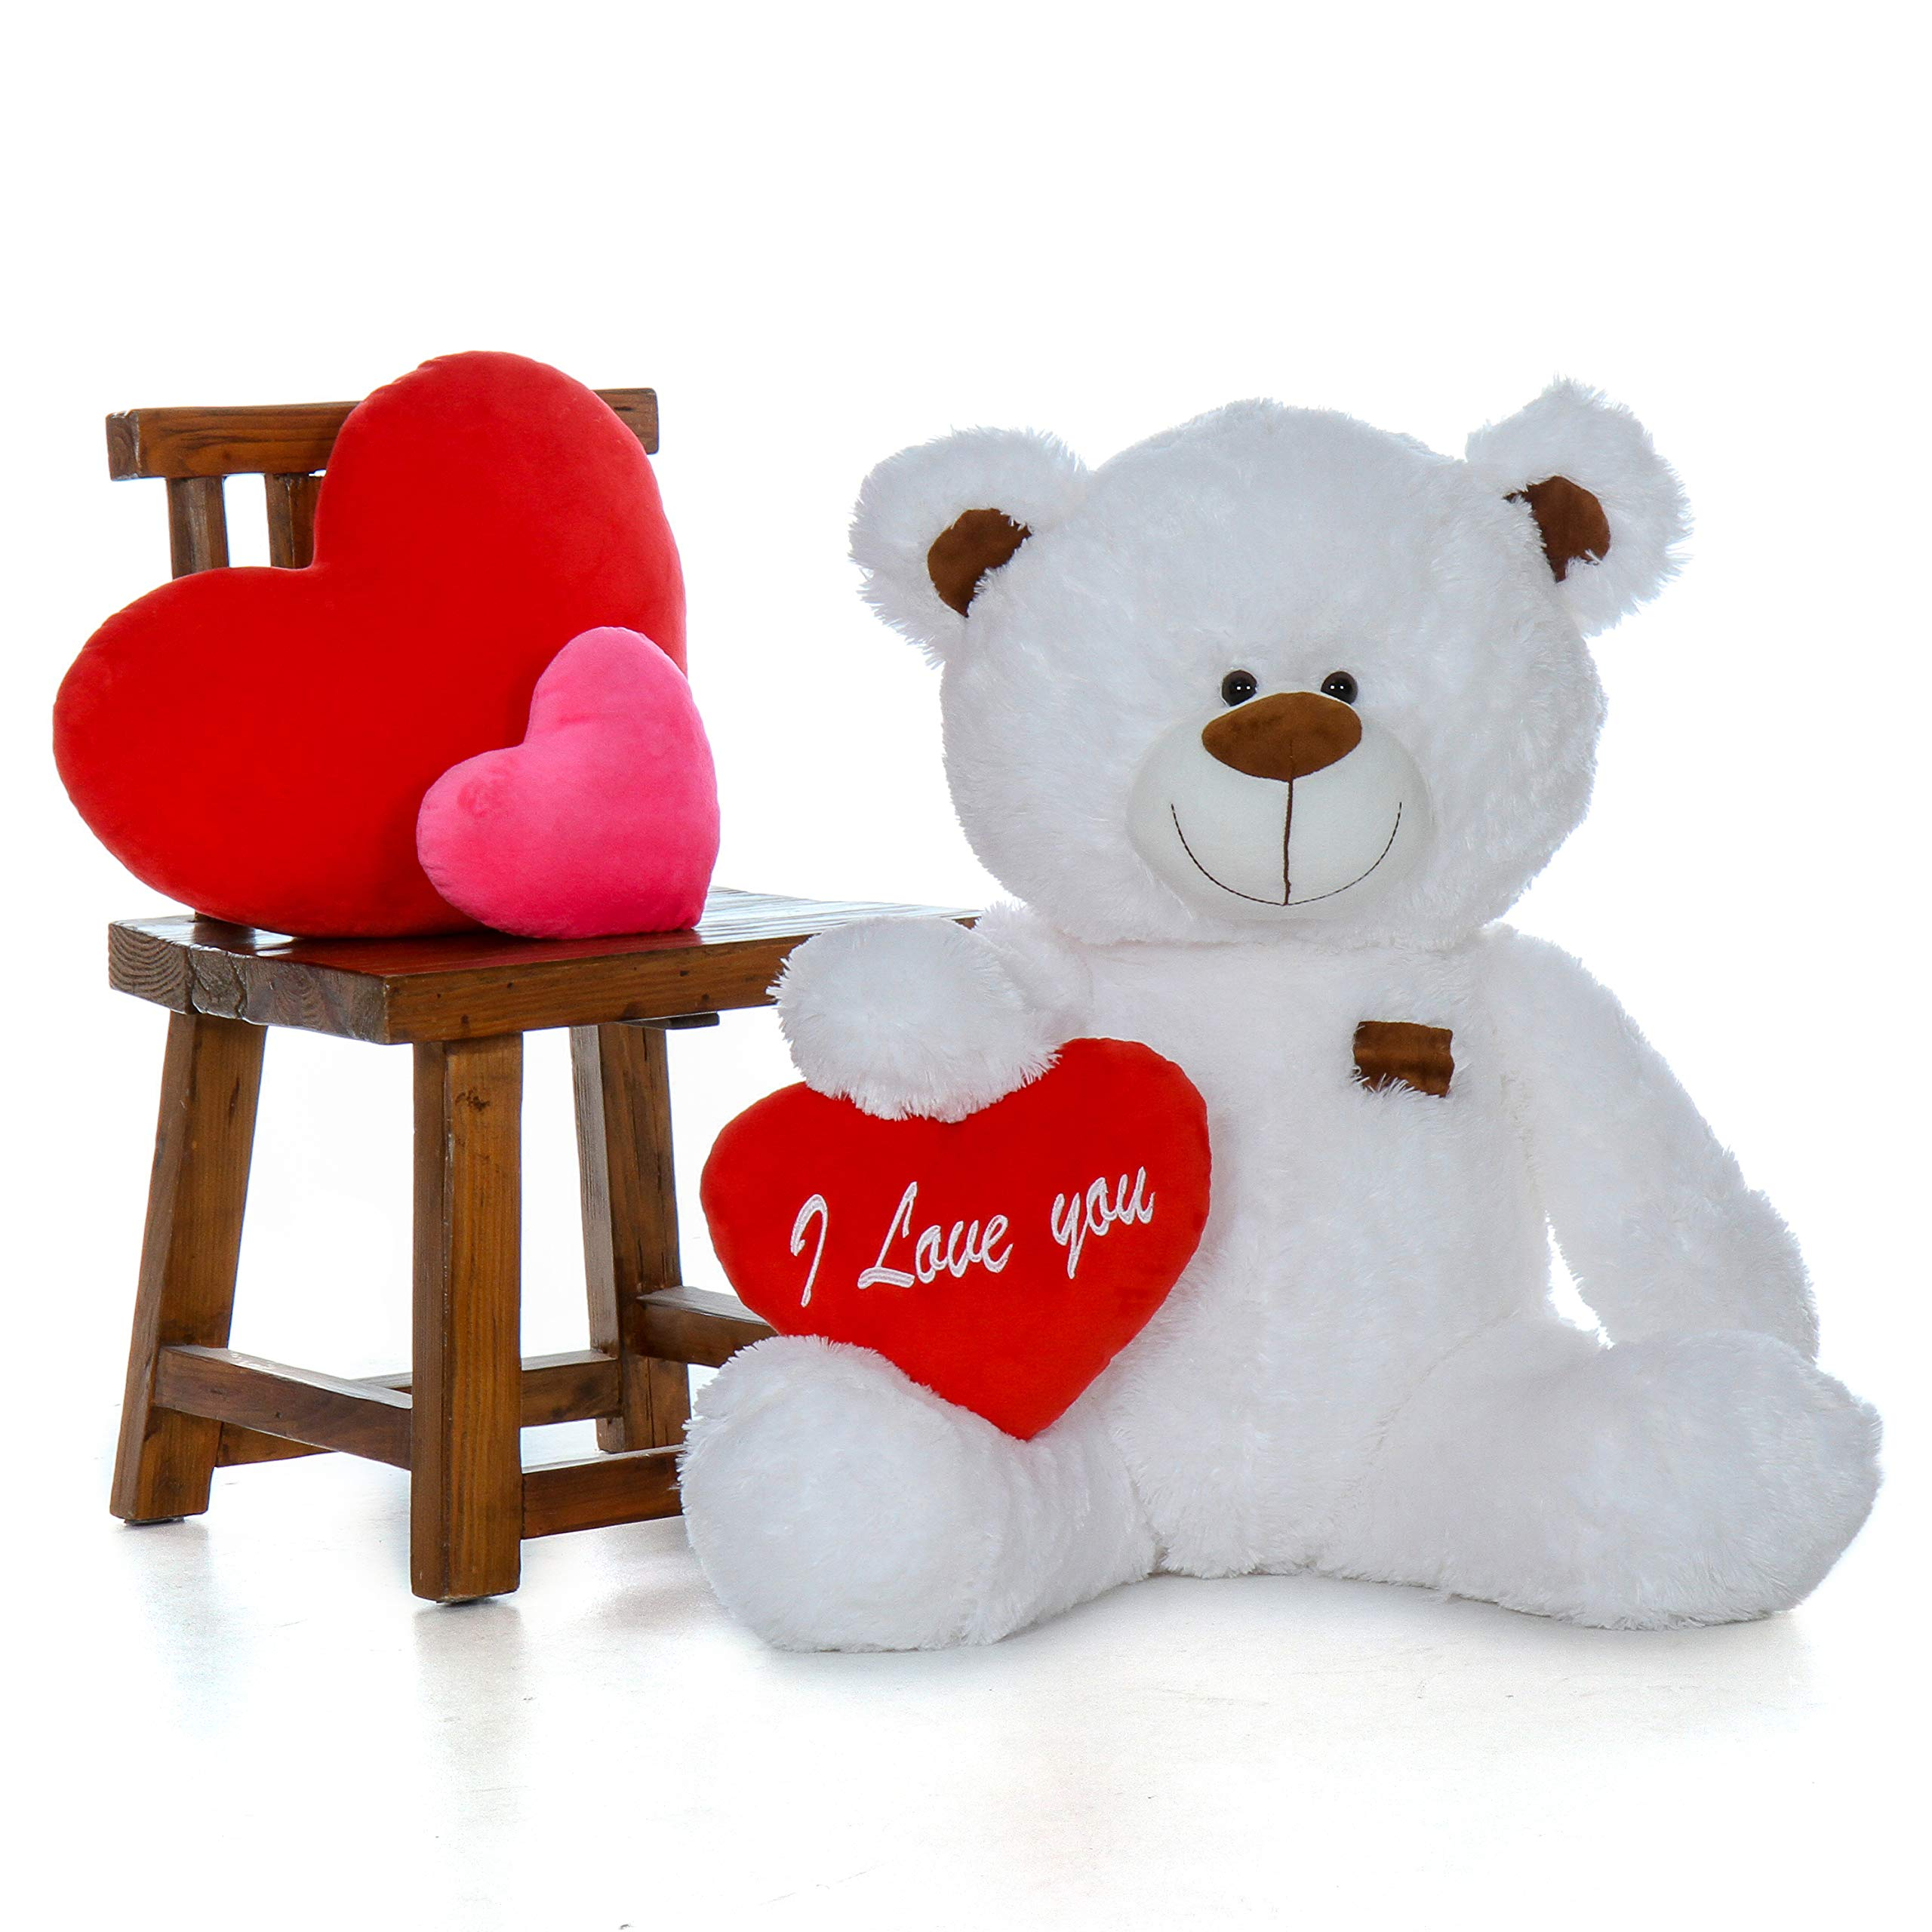 Giant Teddy Original Brand - Biggest Collection of Super Soft Stuffed Teddy Bears (Pillow Heart Included) (Snow White, Huge) by Giant Teddy